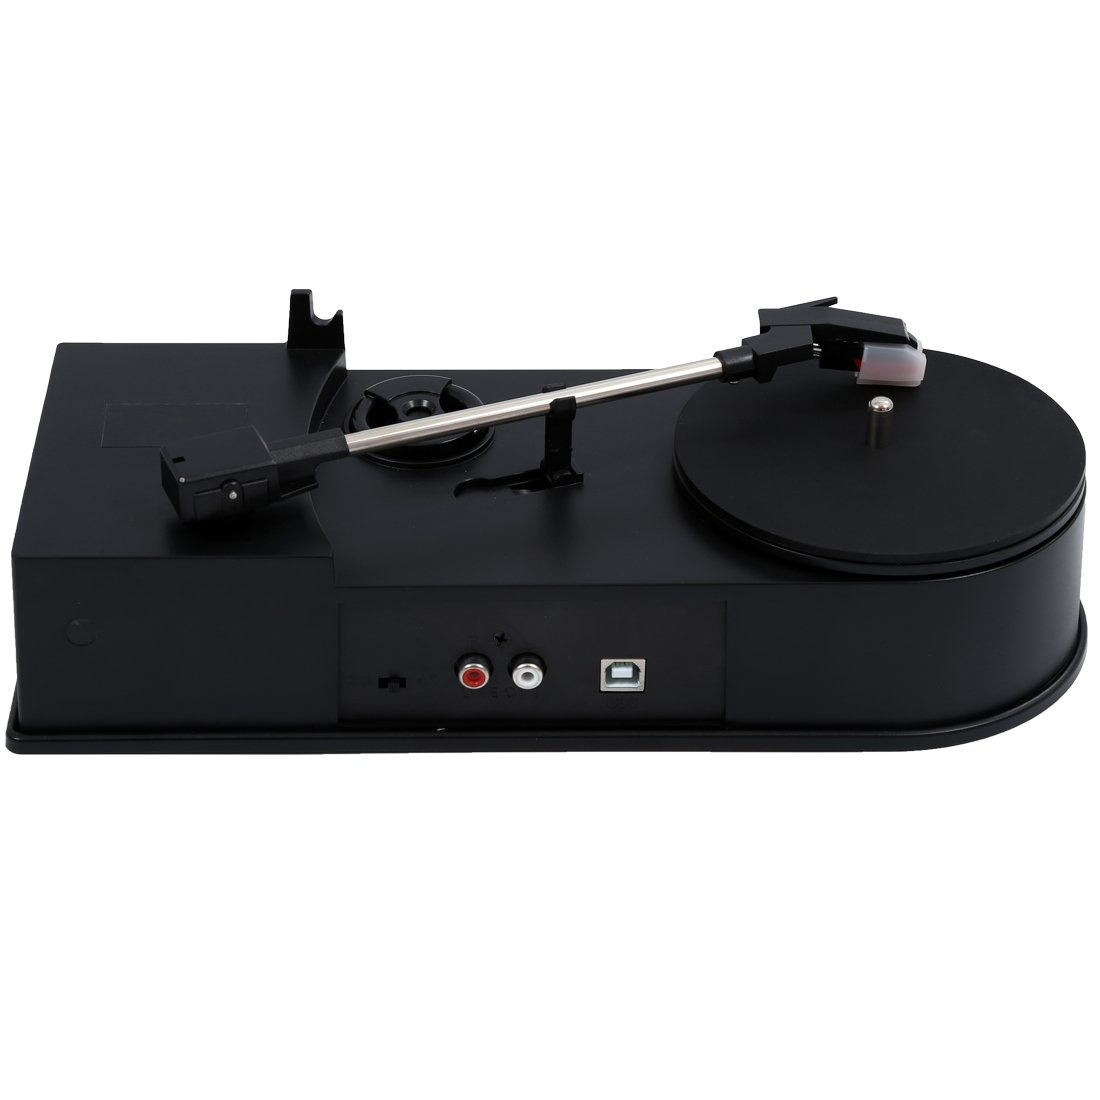 Amazon com: SODIAL mini USB Turntable Vinyl LP to MP3 recorder USB